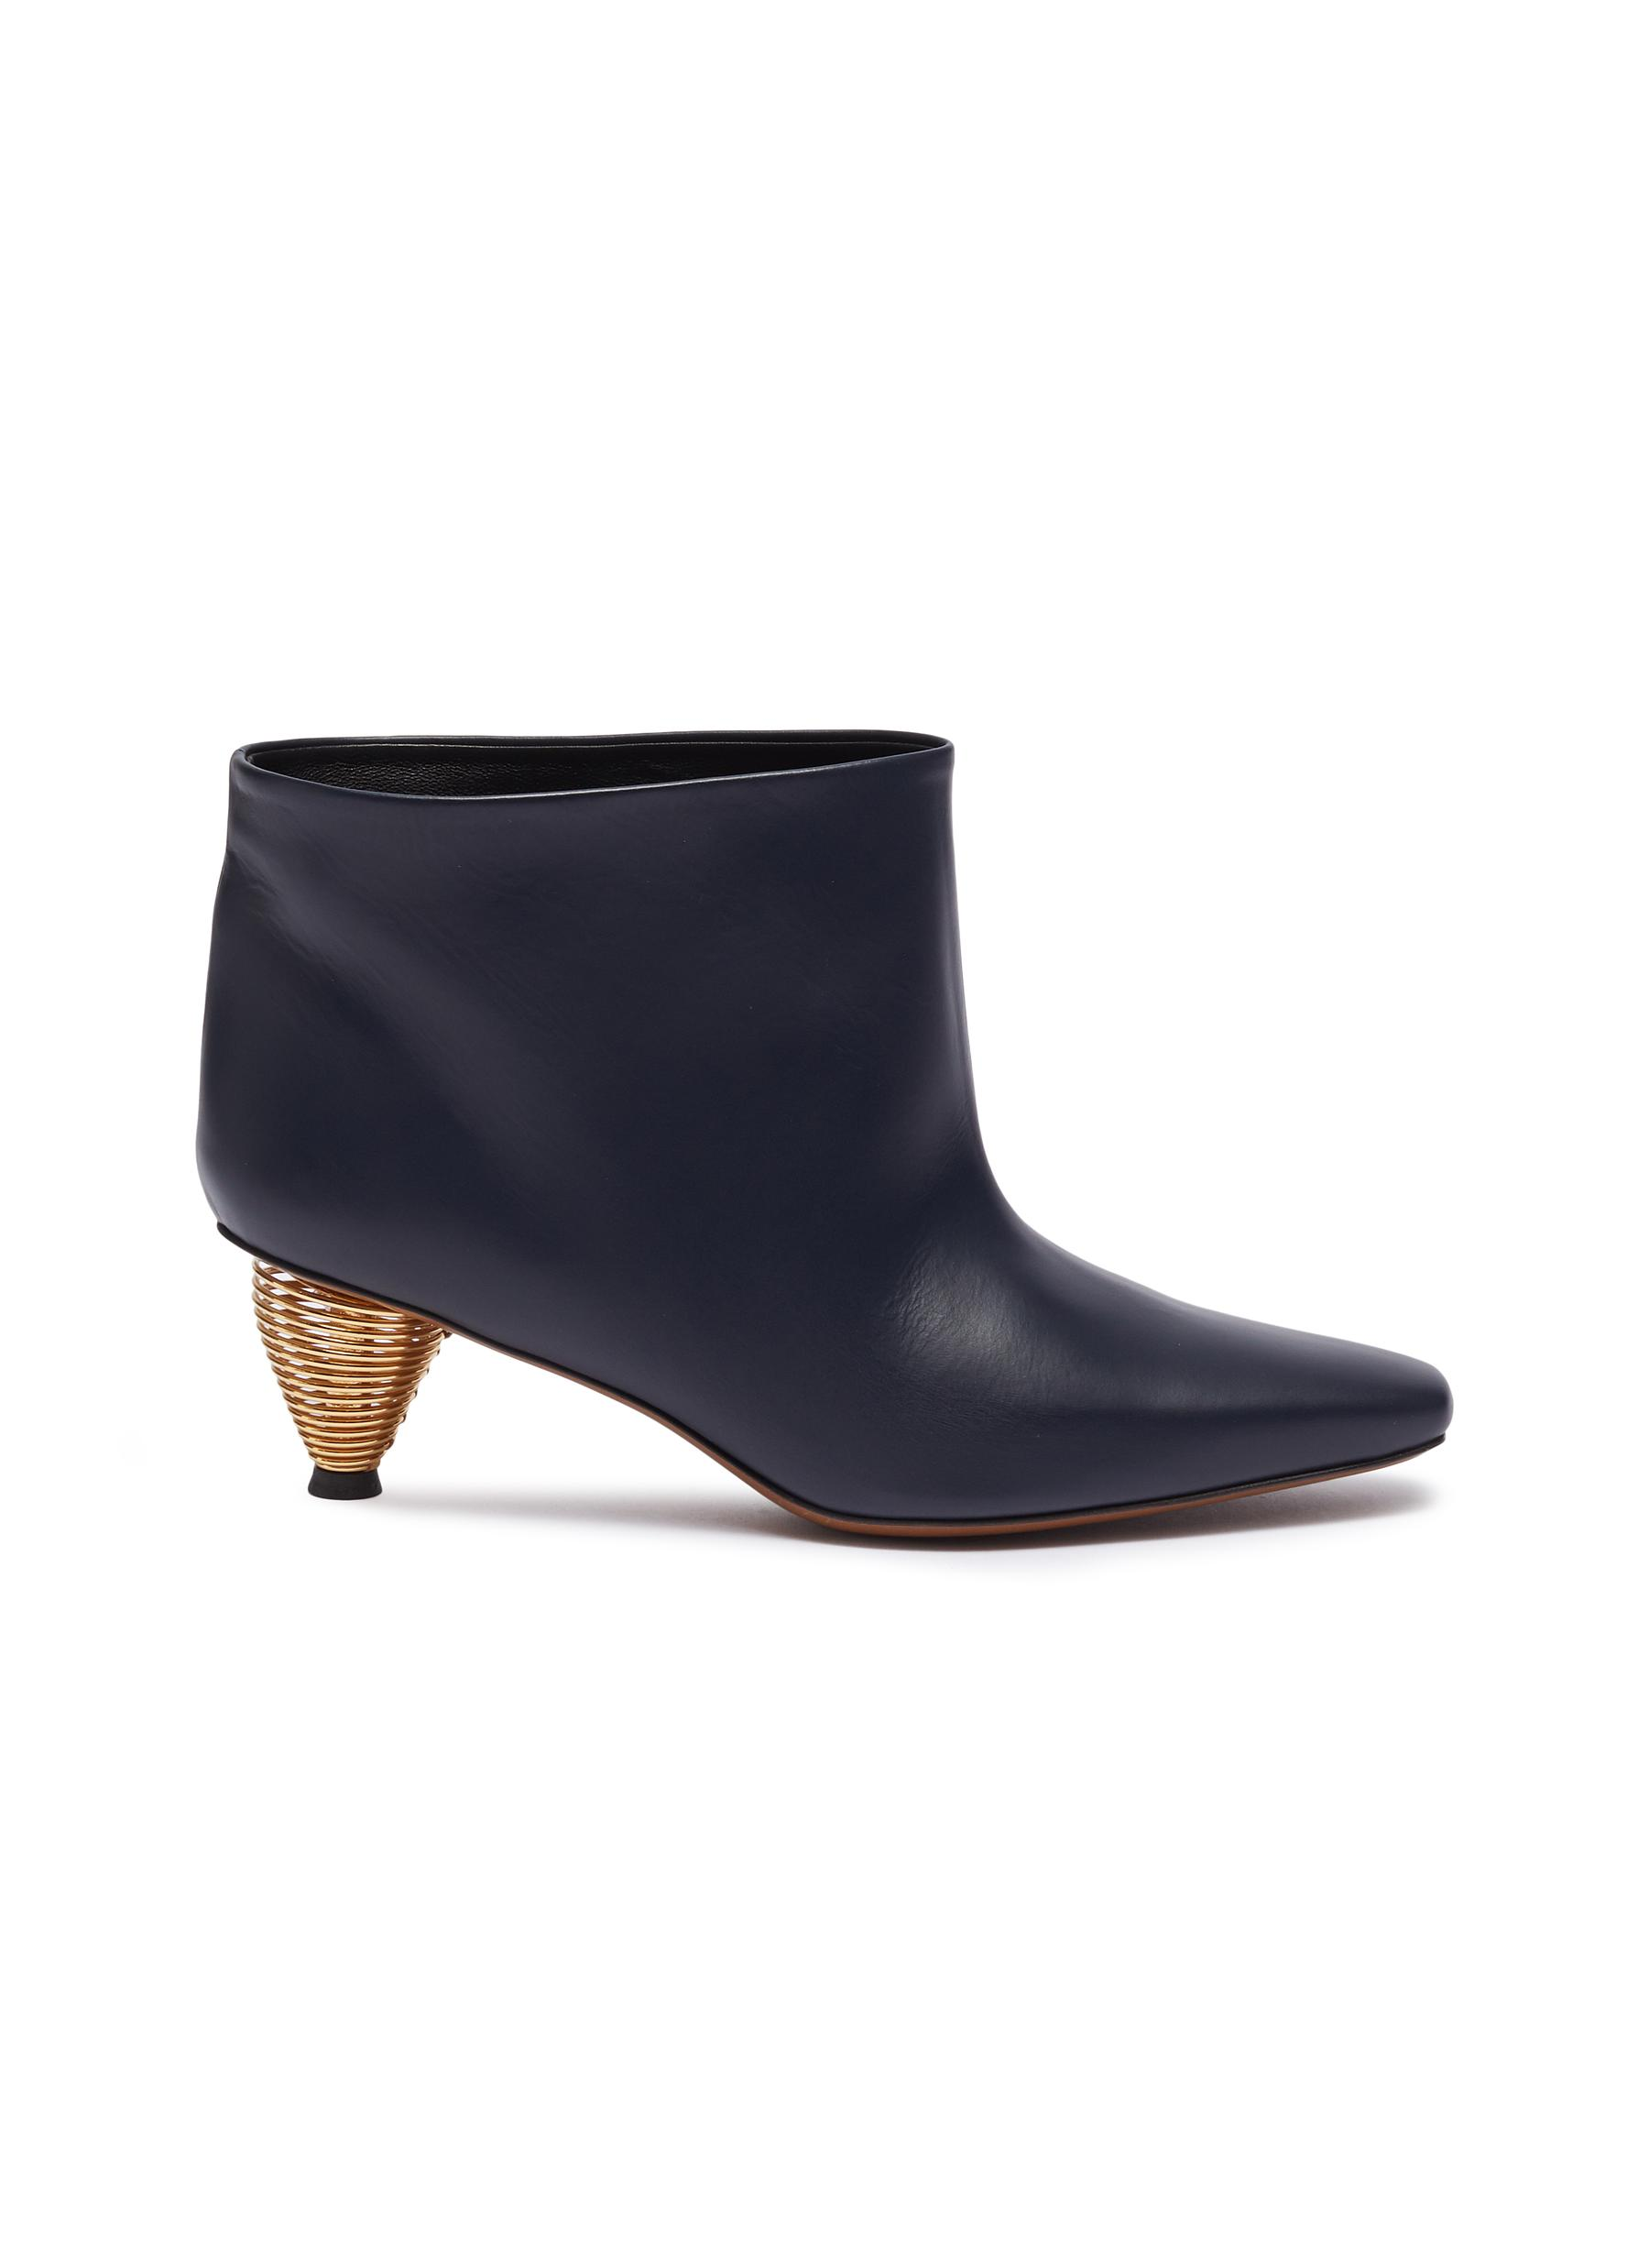 Octo leather ankle boots by Neous